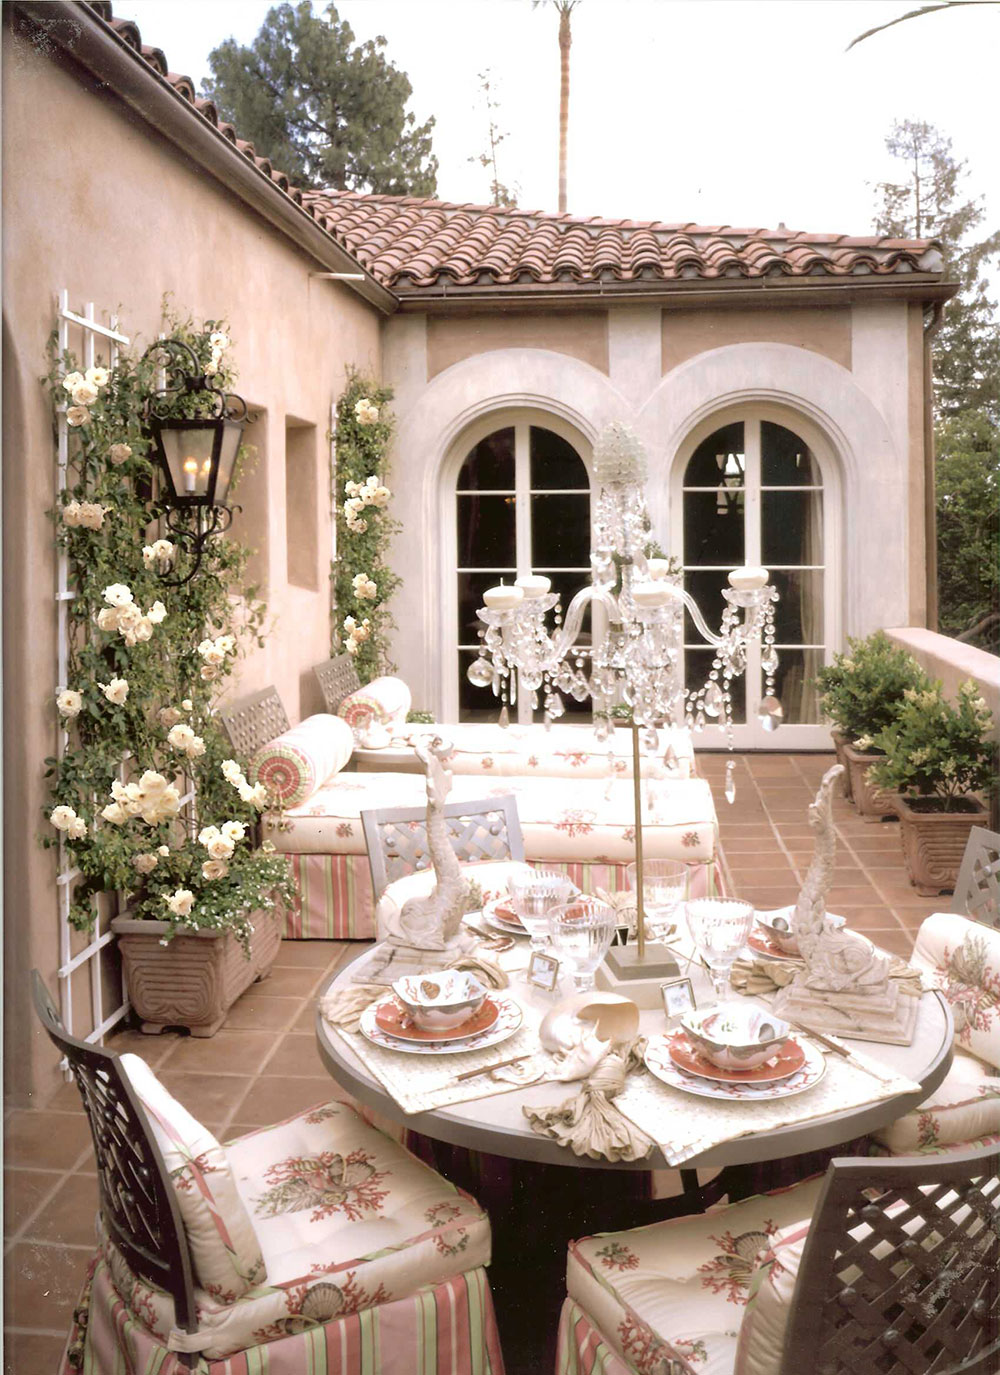 ideas for creating an outdoor living space